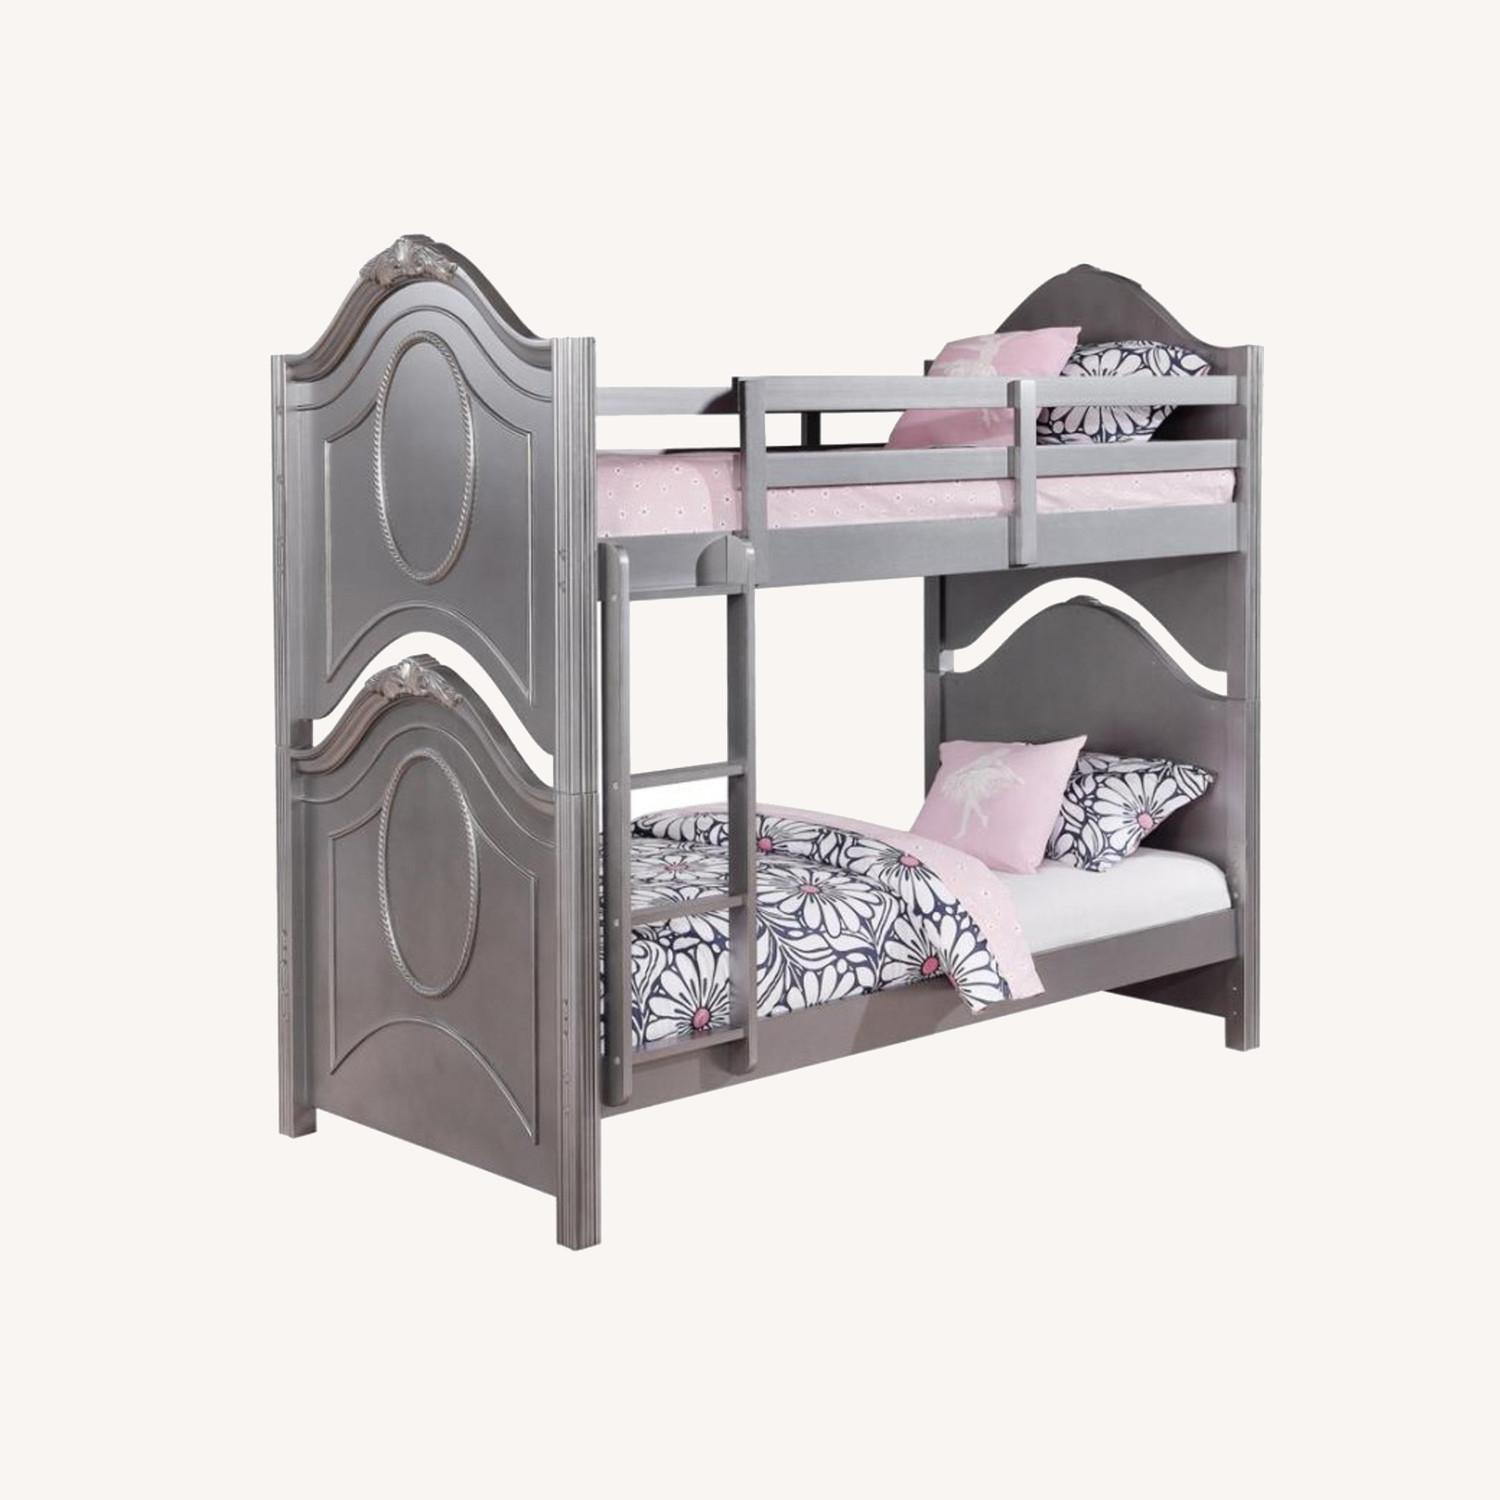 Twin Over Twin Bunk Bed In Metallic Pewter Finish - image-4